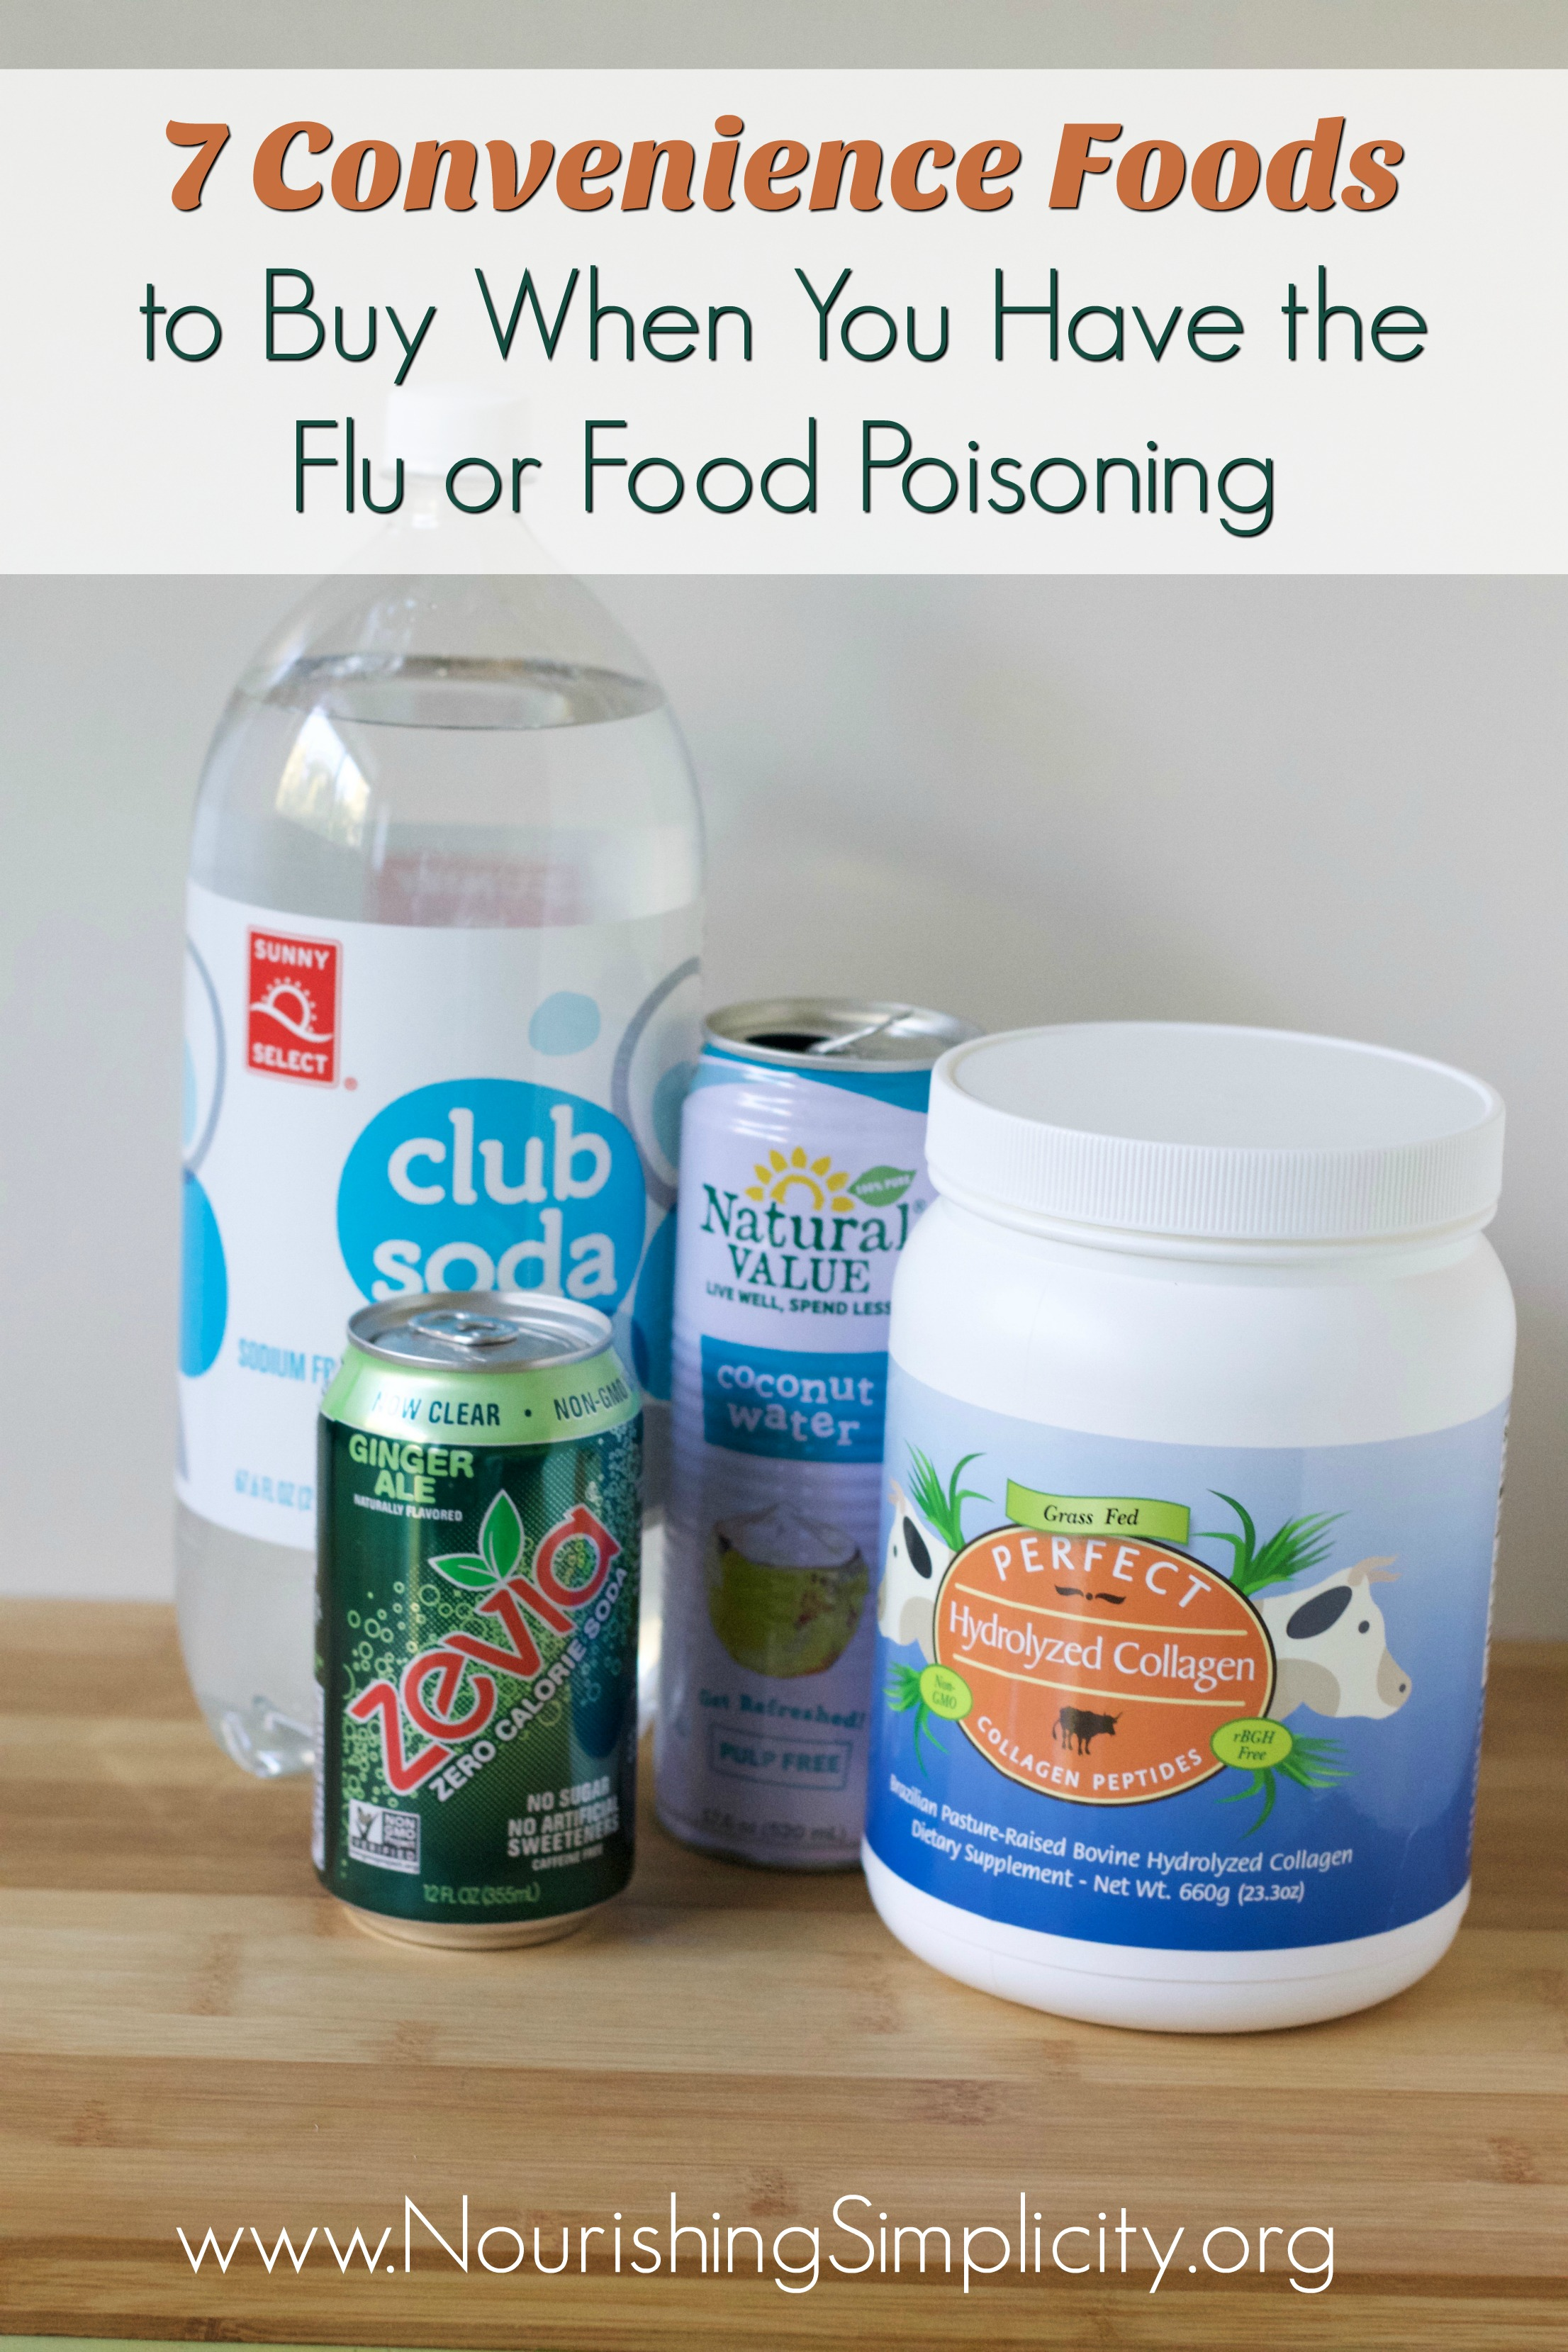 7 Convenience Foods to Buy When You Have the Flu or Food Poisoning